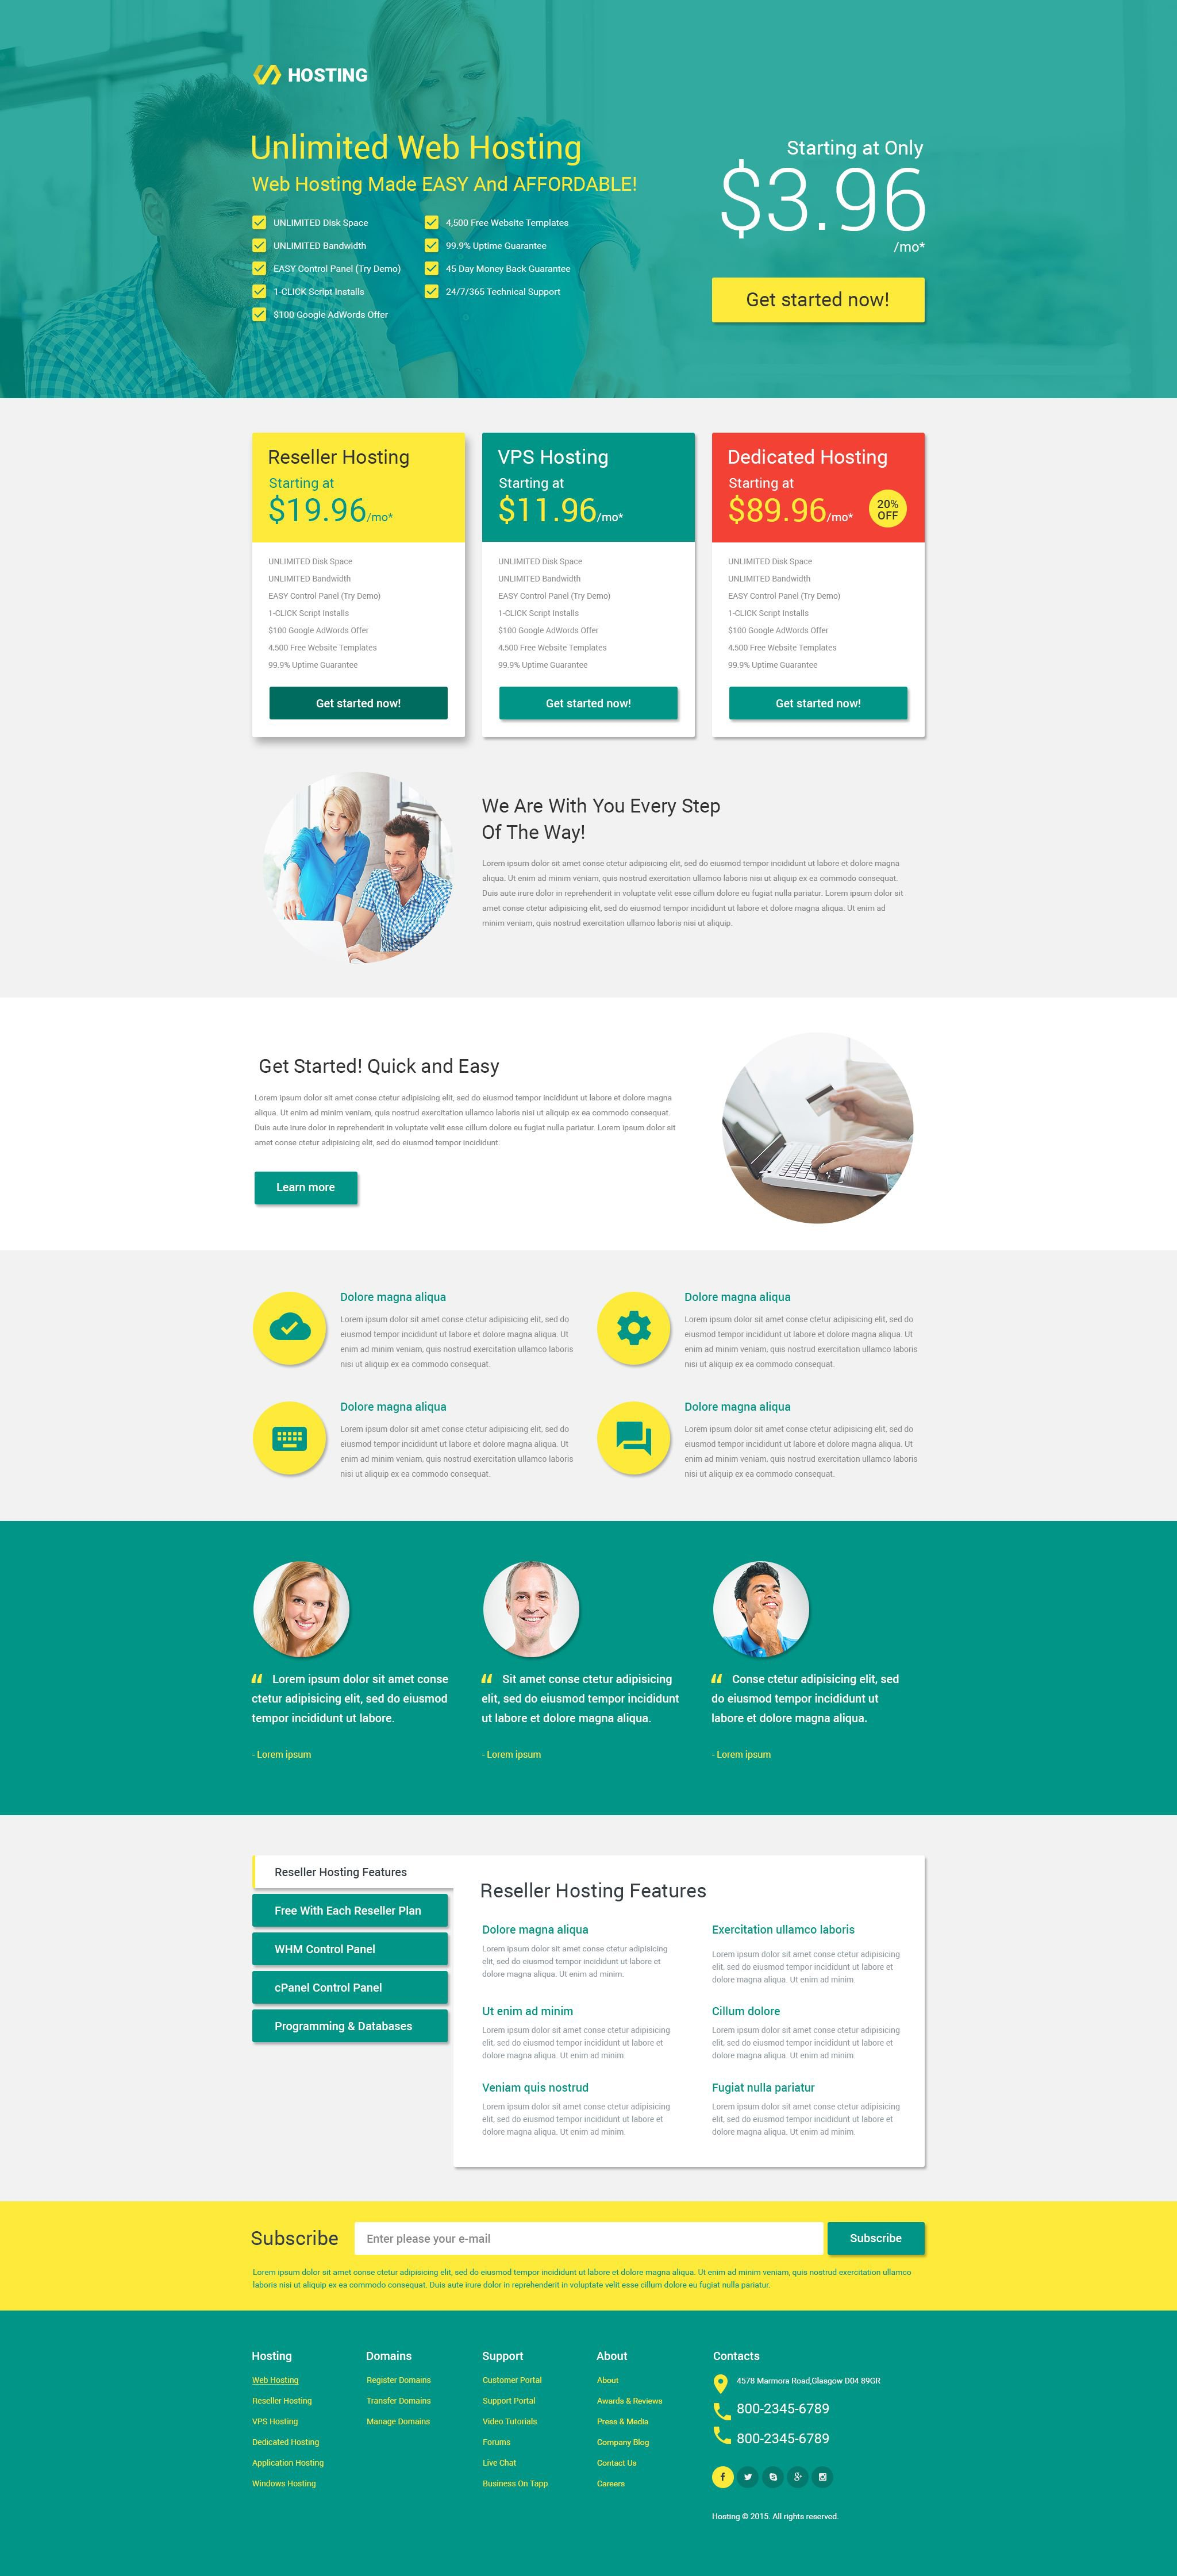 The Hosting Company Solution Landing Page Template Design 53399, one of the best Landing Page templates of its kind (hosting, most popular), also known as hosting company solution Landing Page template, domain Landing Page template, services Landing Page template, beginner Landing Page template, plan Landing Page template, standard Landing Page template, advanced Landing Page template, dedicated Landing Page template, workteam Landing Page template, tools Landing Page template, special offer Landing Page template, server Landing Page template, monitoring Landing Page template, management Landing Page template, account Landing Page template, activation Landing Page template, client Landing Page template, technology solution Landing Page template, data center provider Landing Page template, traffic Landing Page template, internet Landing Page template, web IT processor and related with hosting company solution, domain, services, beginner, plan, standard, advanced, dedicated, workteam, tools, special offer, server, monitoring, management, account, activation, client, technology solution, data center provider, traffic, internet, web IT processor, etc.